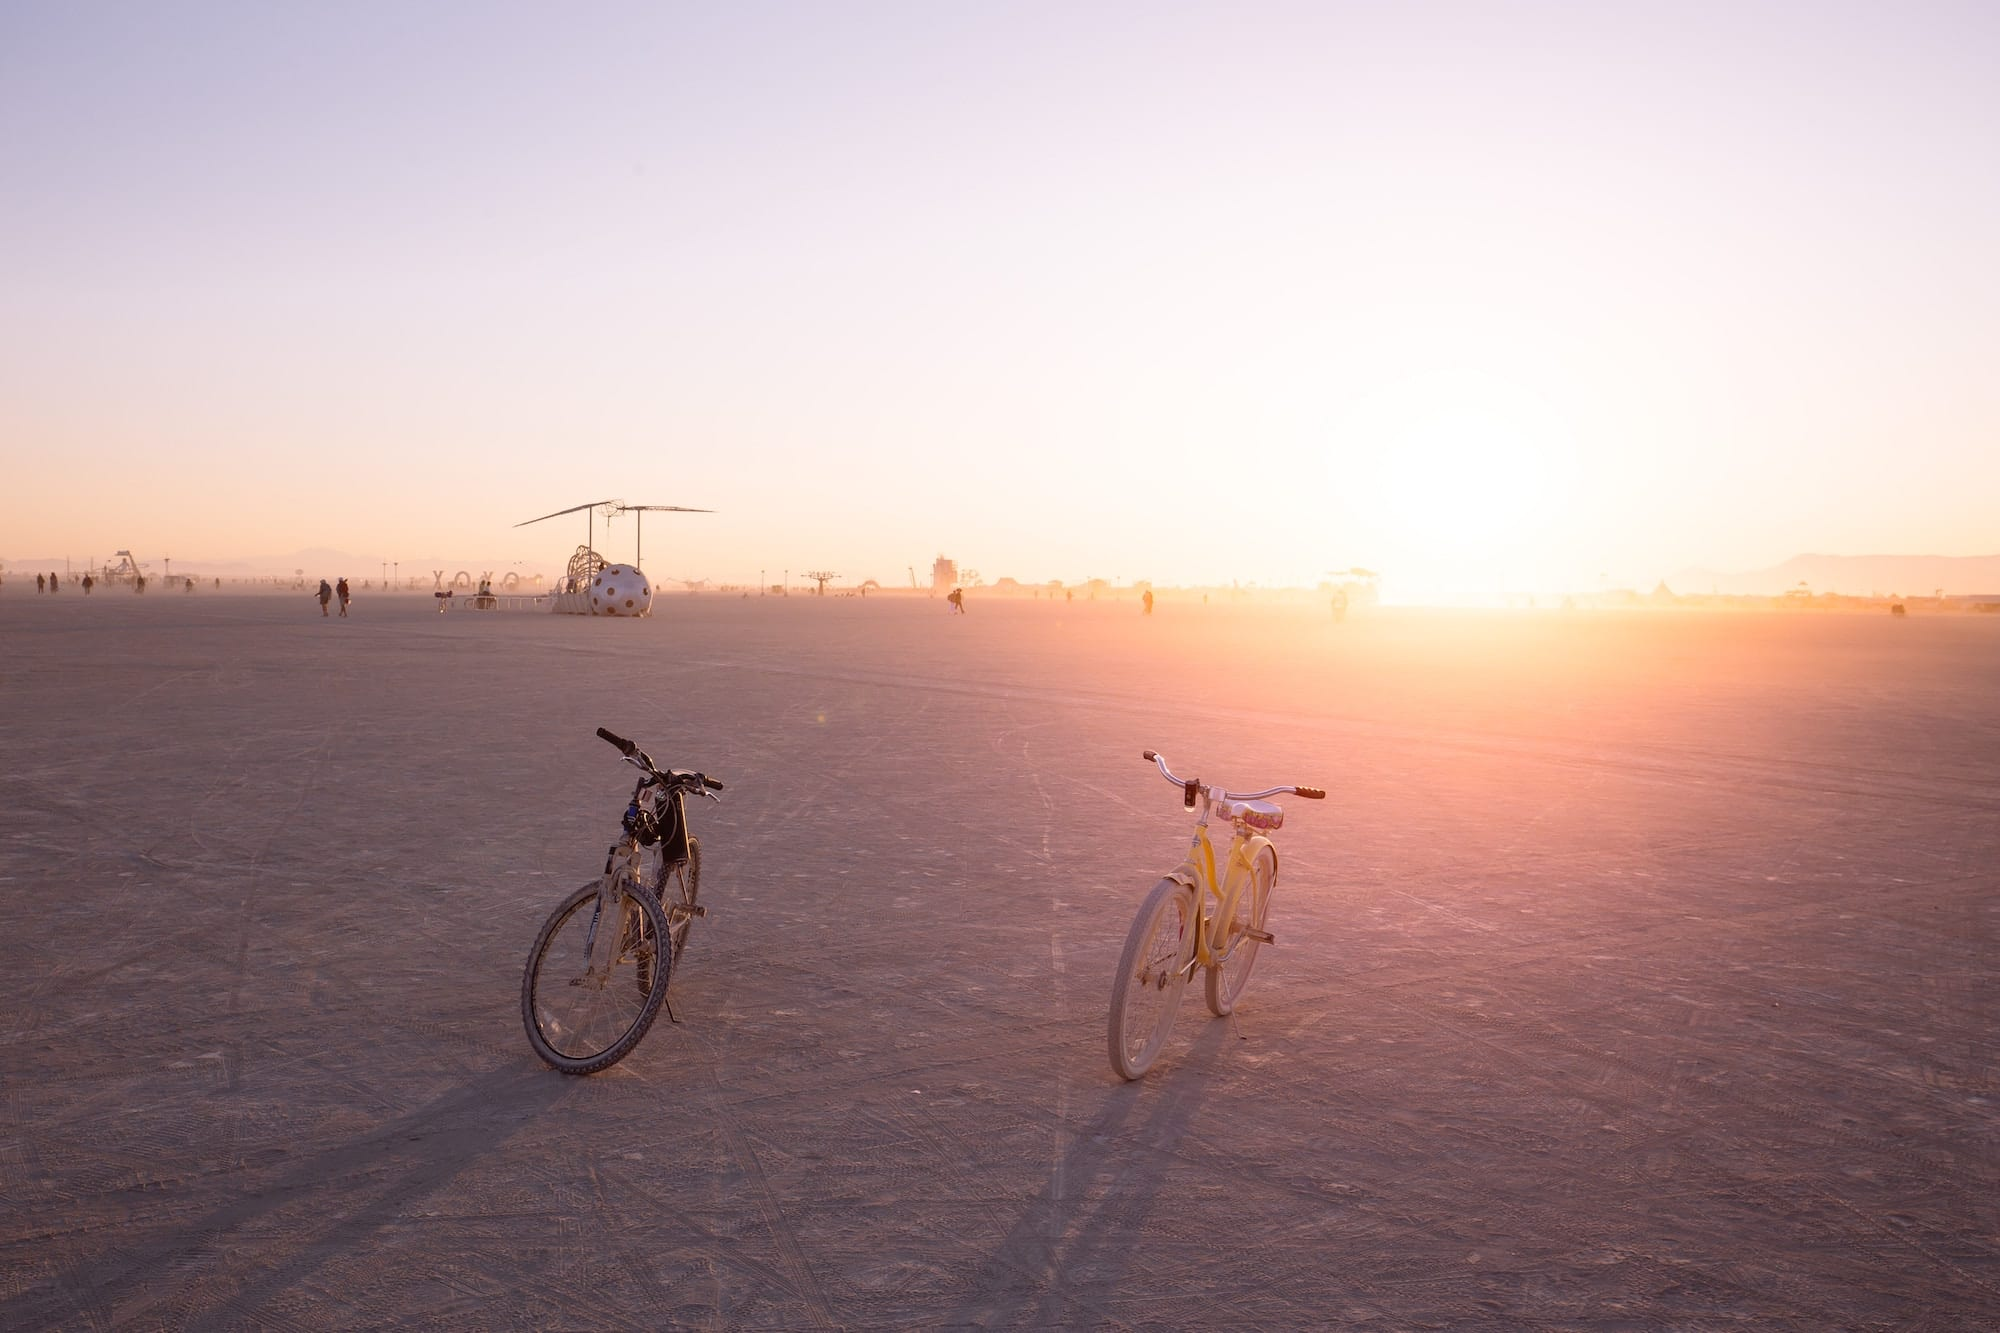 bikepacking tips for the desert